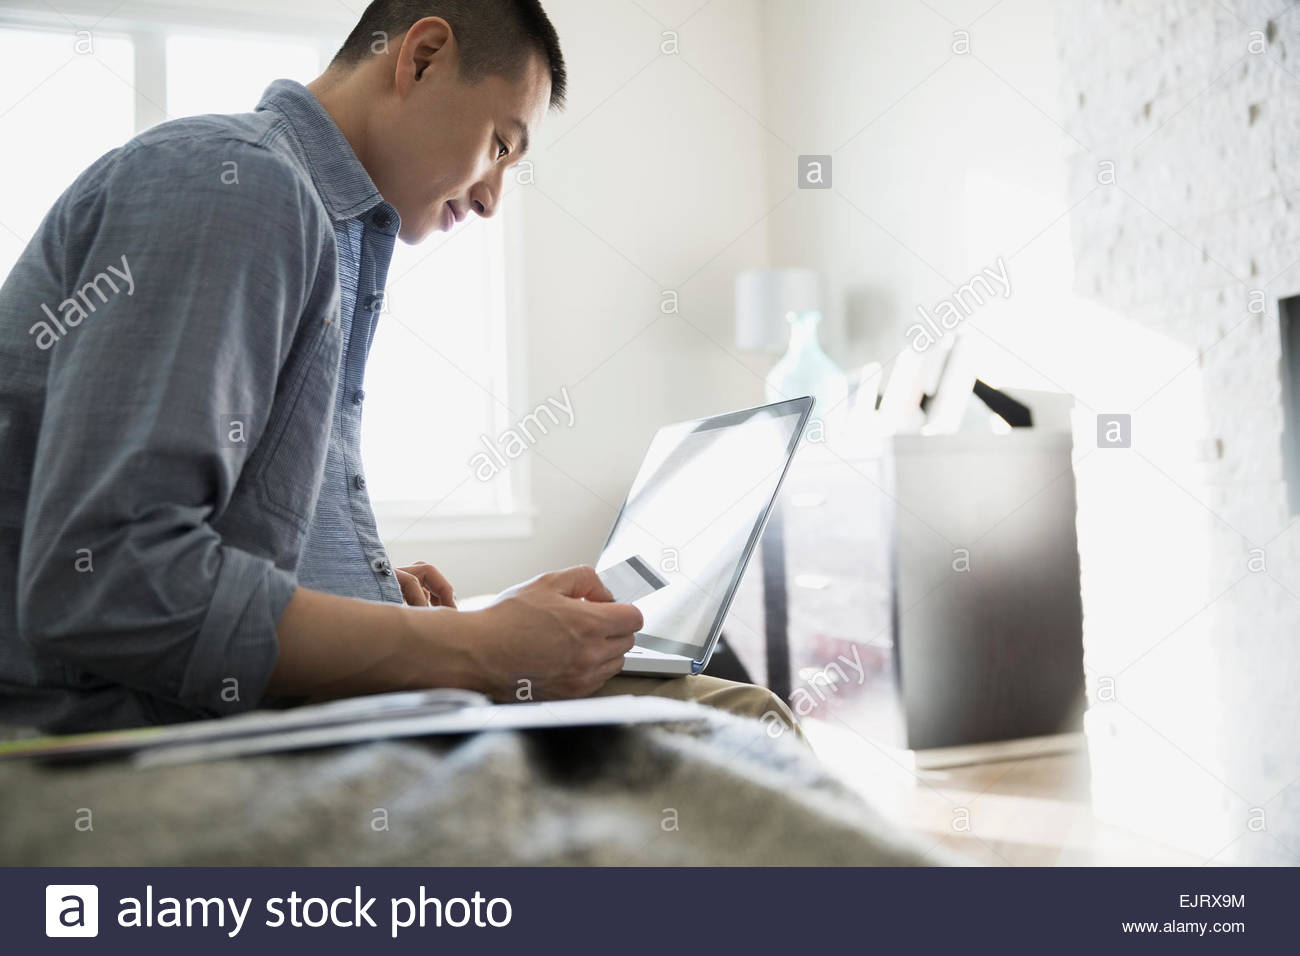 Man shopping online with credit card and laptop - Stock Image